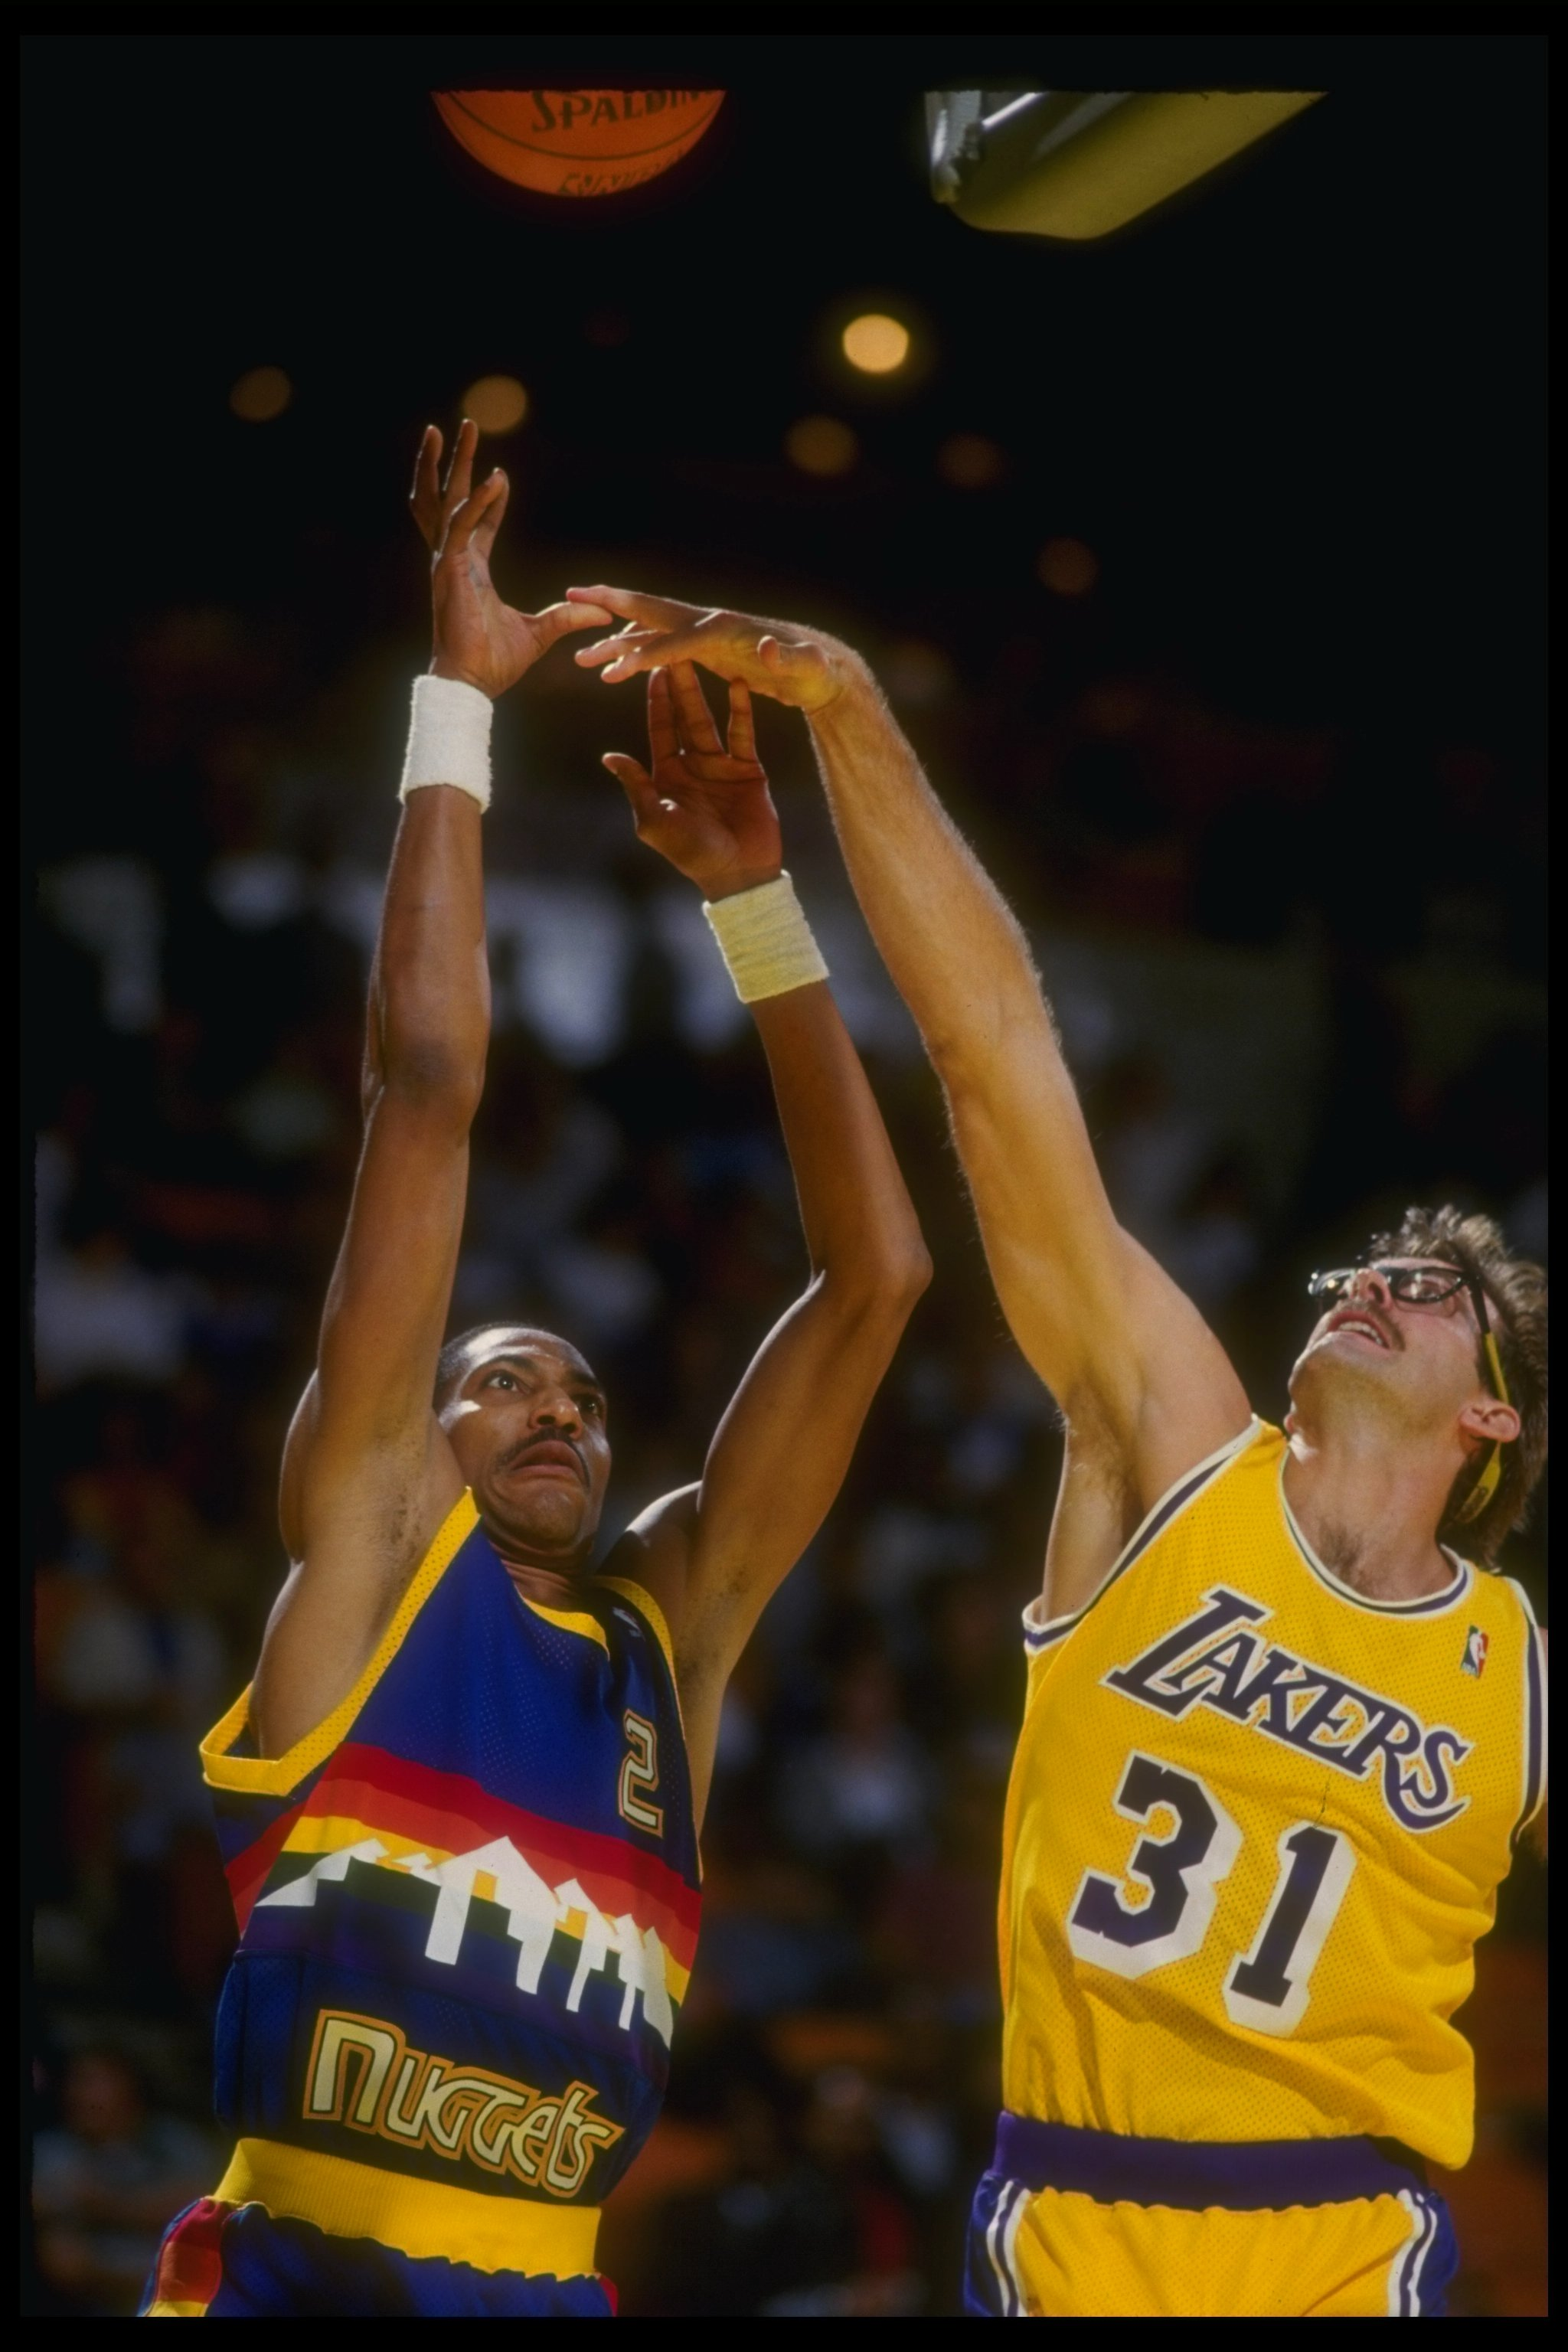 1980''s:  Guard Alex English of the Denver Nuggets shoots the ball during a game versus the Los Angeles Lakers at the Forum in Inglewood, California. Mandatory Credit: Stephen Dunn  /Allsport Mandatory Credit: Stephen Dunn  /Allsport